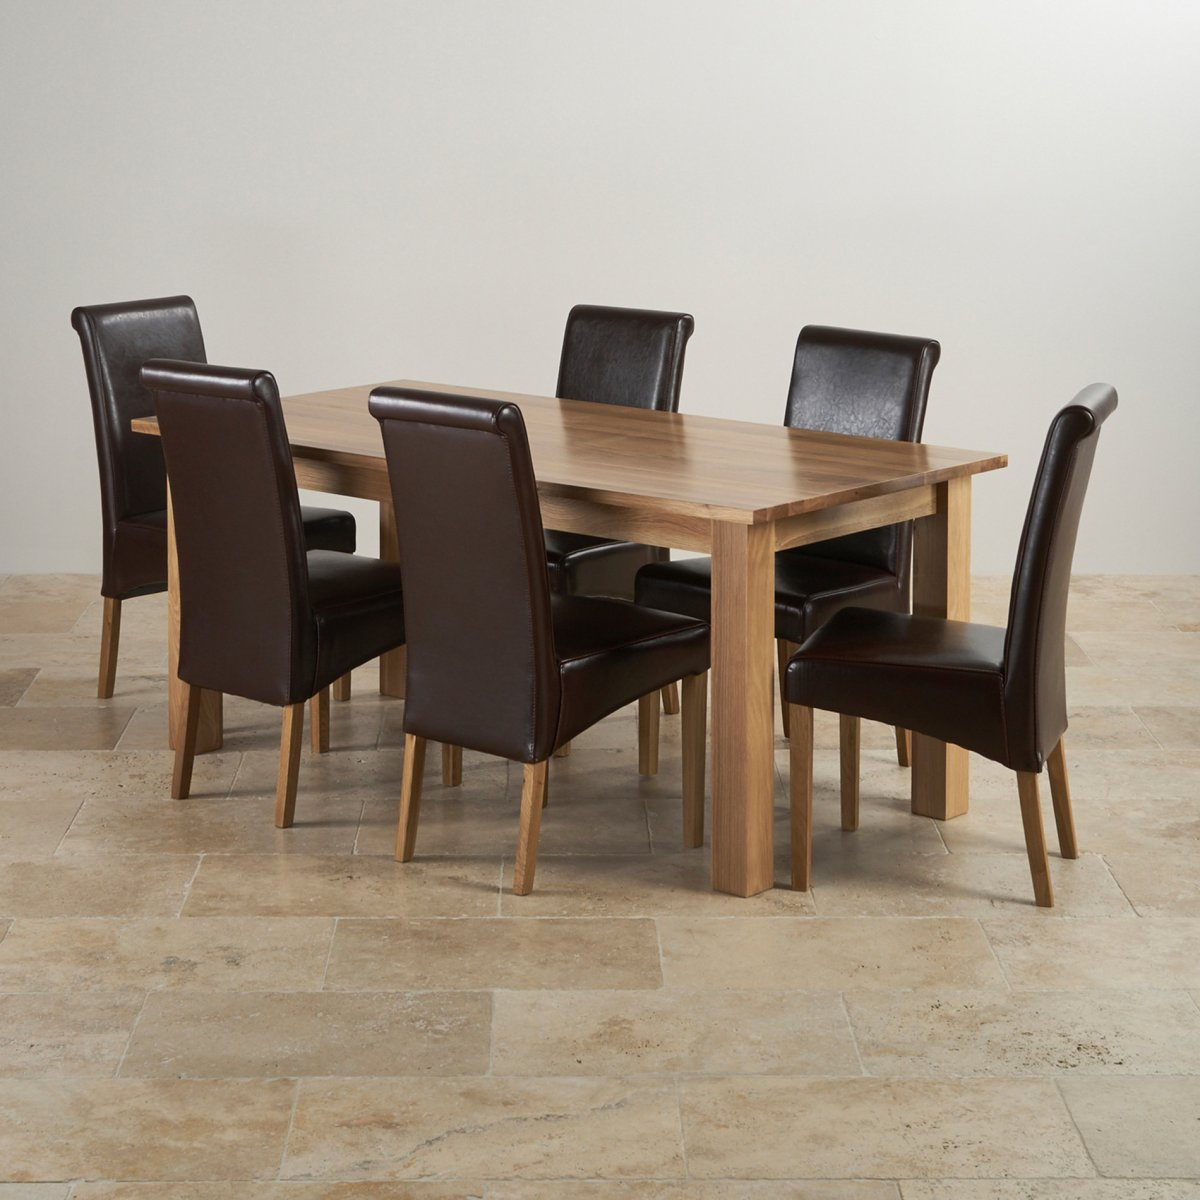 Contemporary Dining Table Chairs: Contemporary Dining Set In Natural Oak